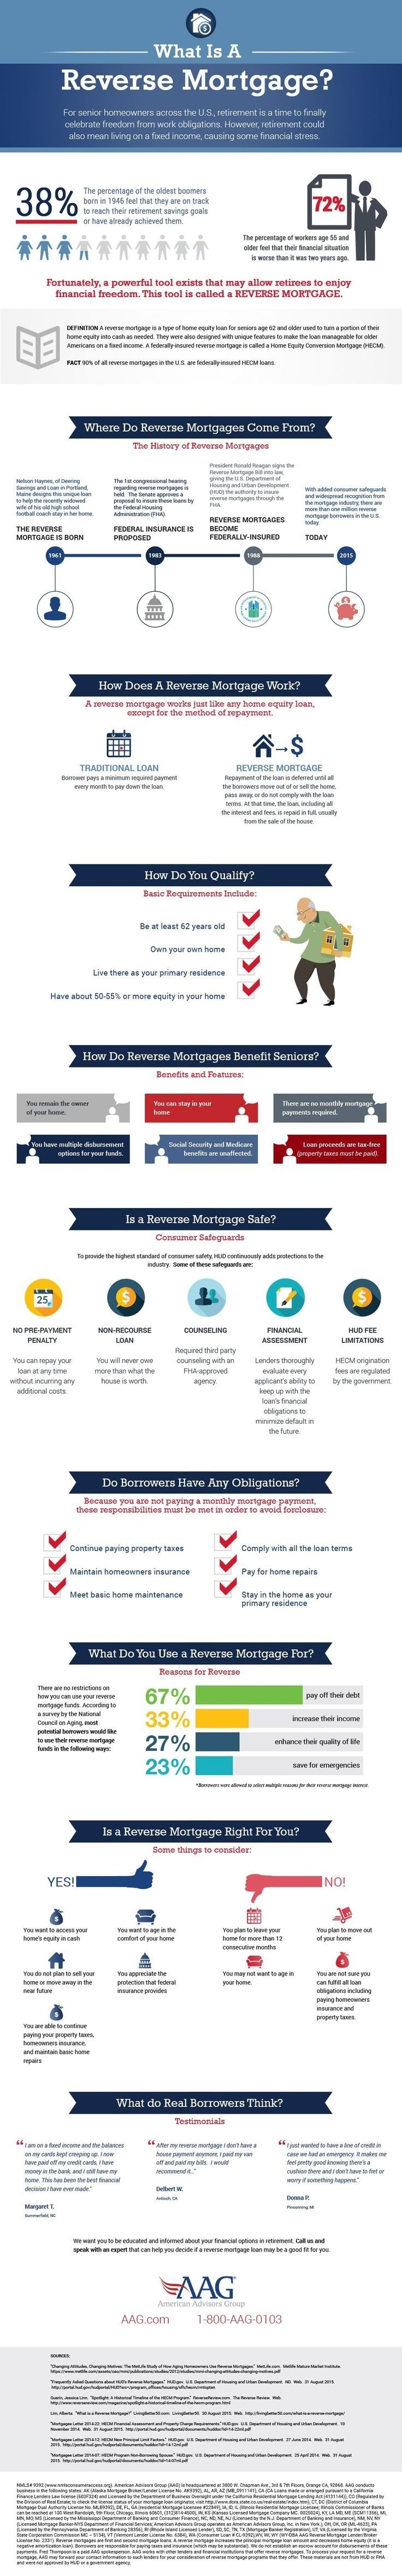 10 Gorgeous Is A Reverse Mortgage A Good Idea 15 best reverse mortgage images on pinterest business ideas 2021